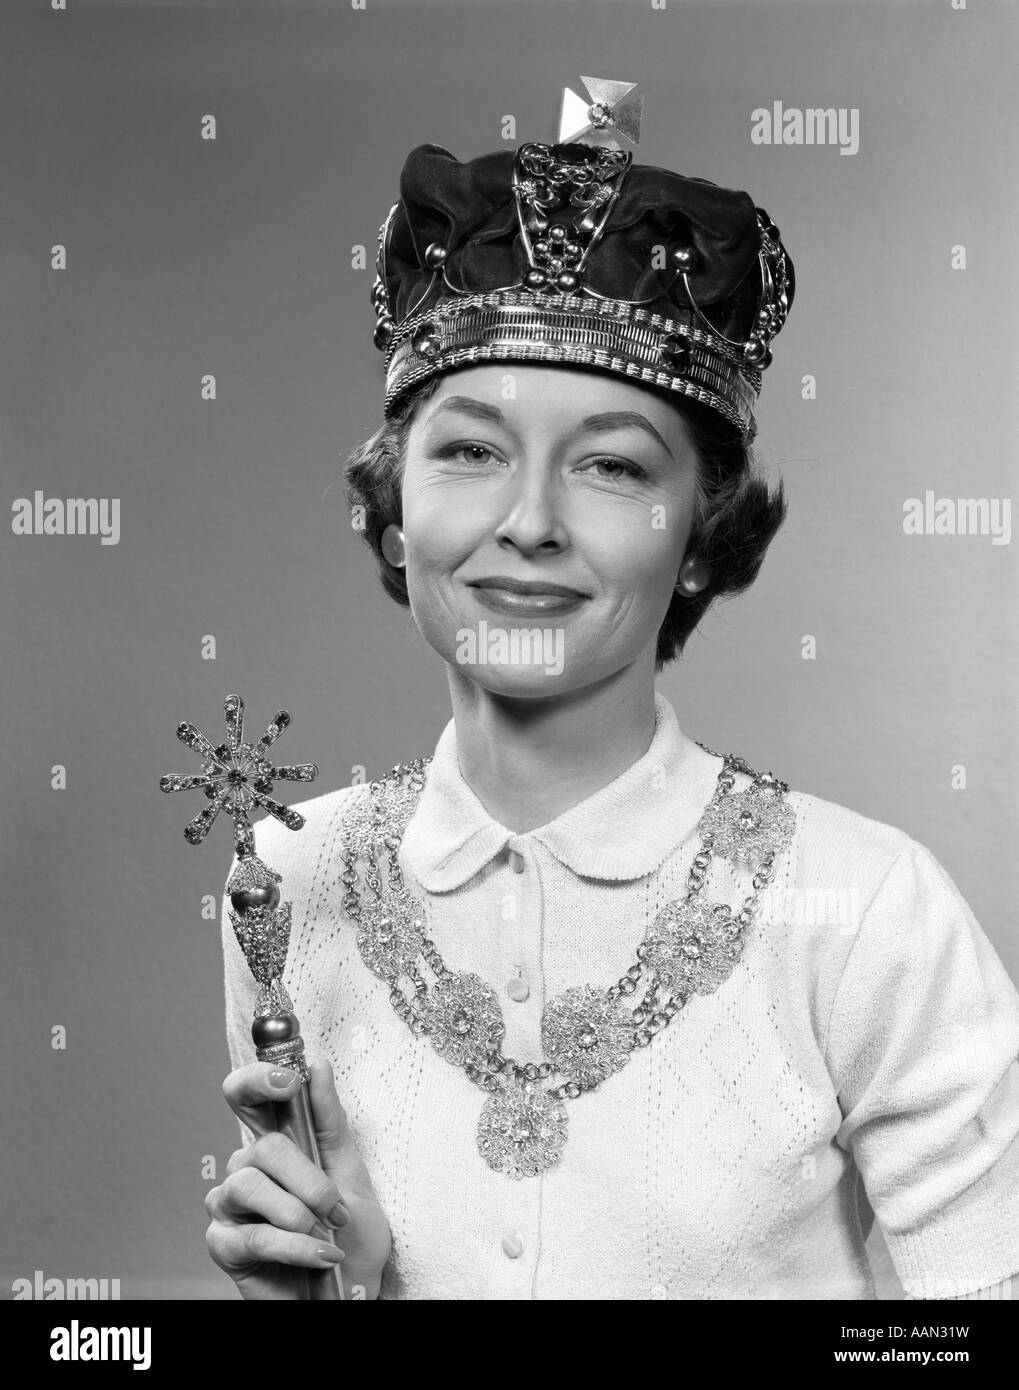 1950s QUEEN FOR A DAY WOMAN WEARING ROYAL CROWN HOLDING SCEPTER LOOKING AT CAMERA - Stock Image